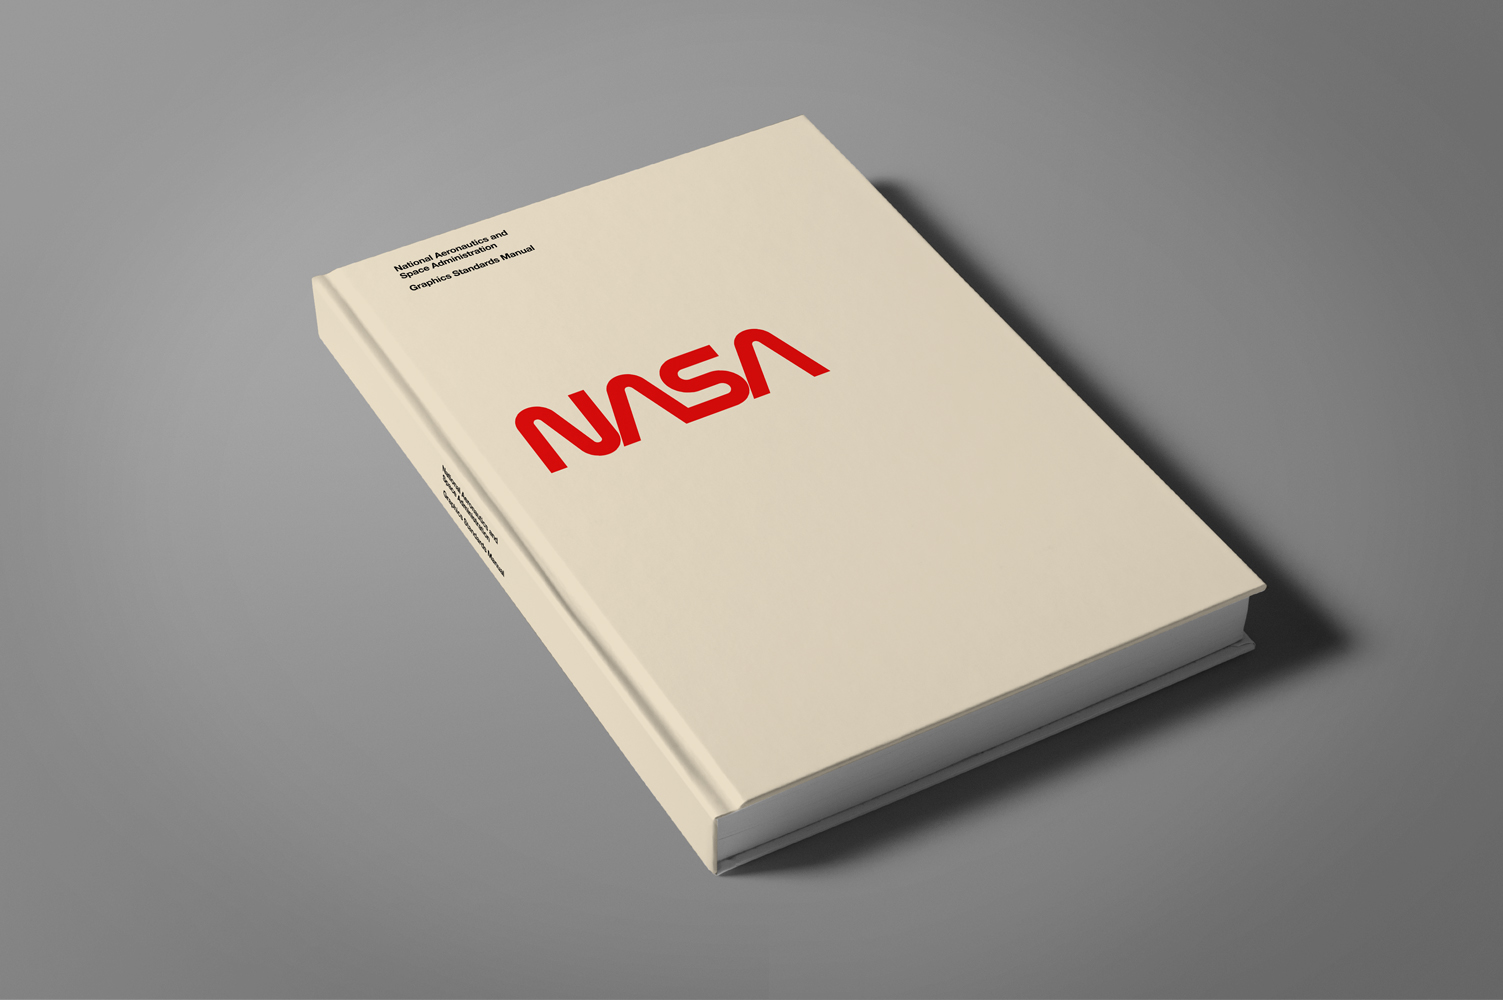 NASA's 1970s Graphics Standards Manual